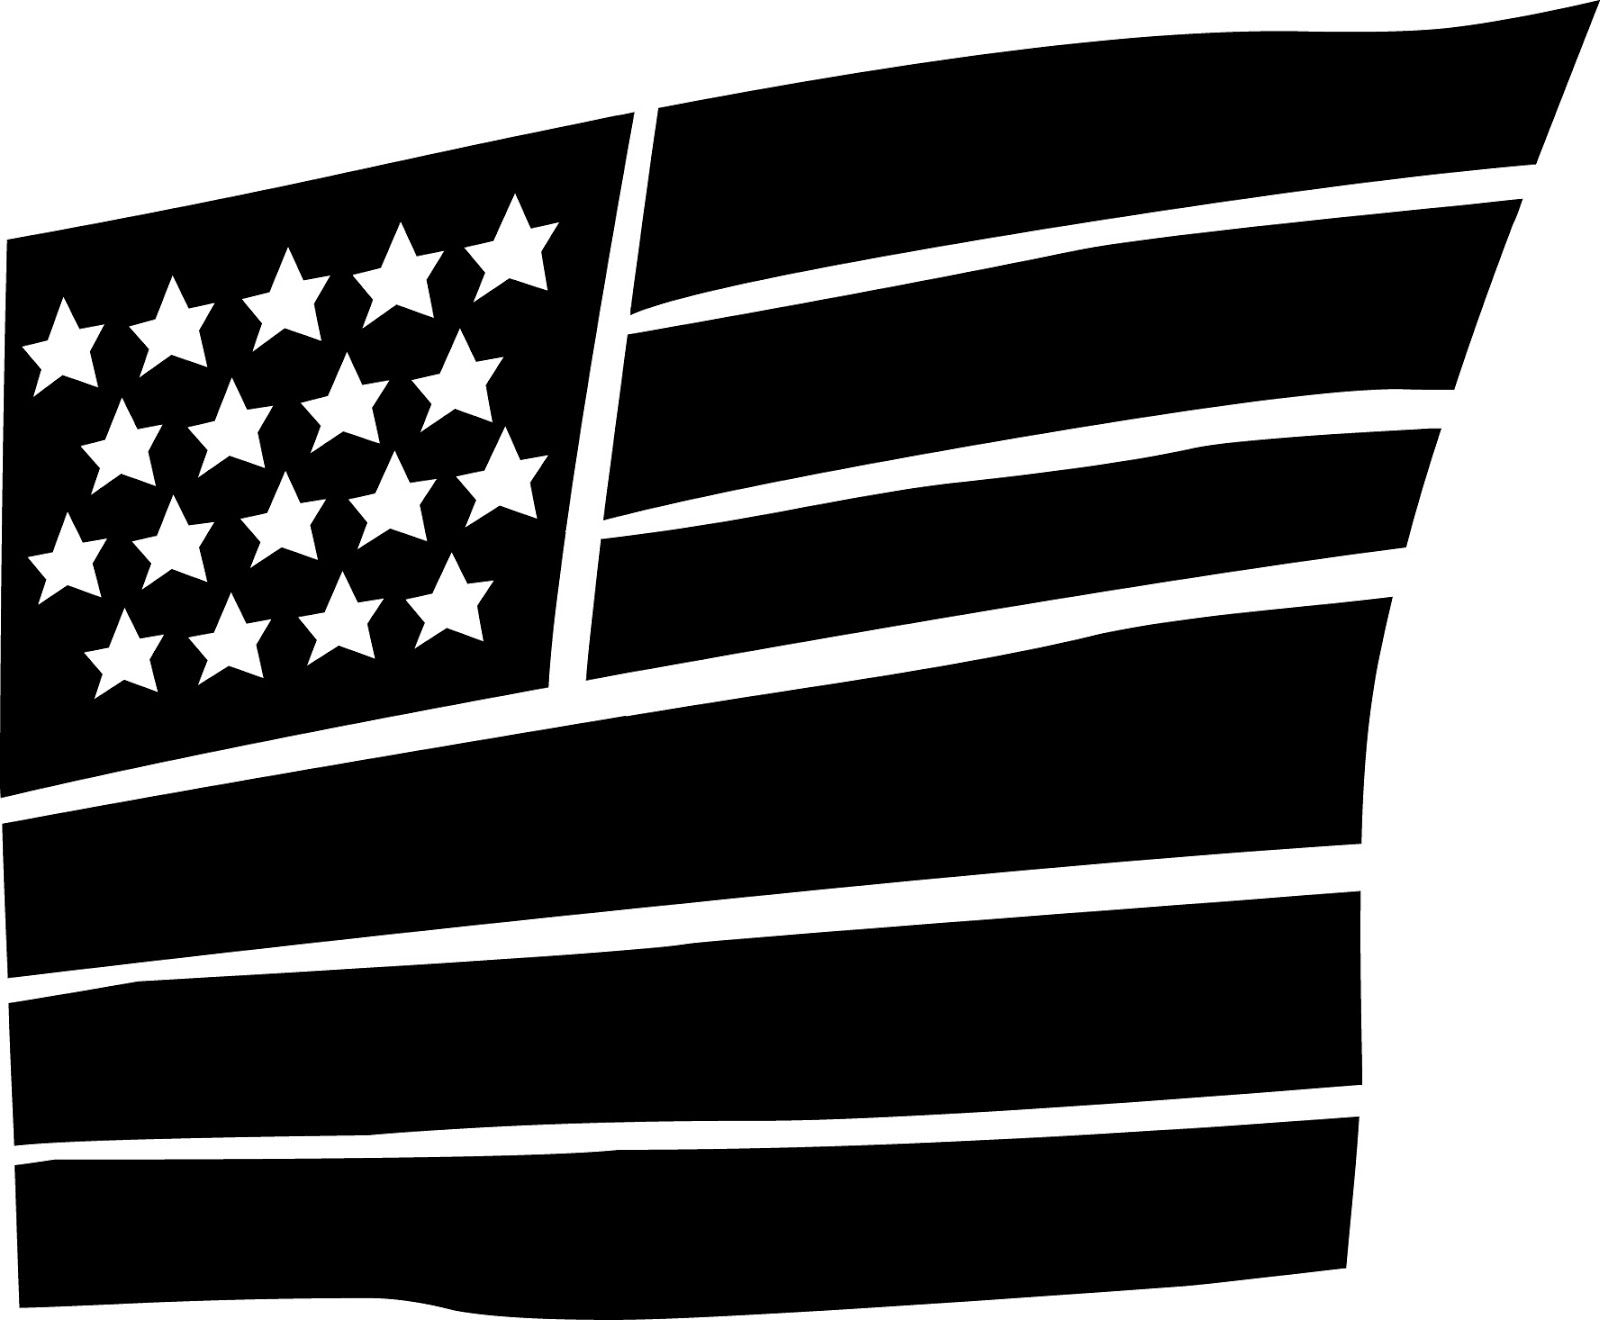 American Flag Black and White Wallpapers.